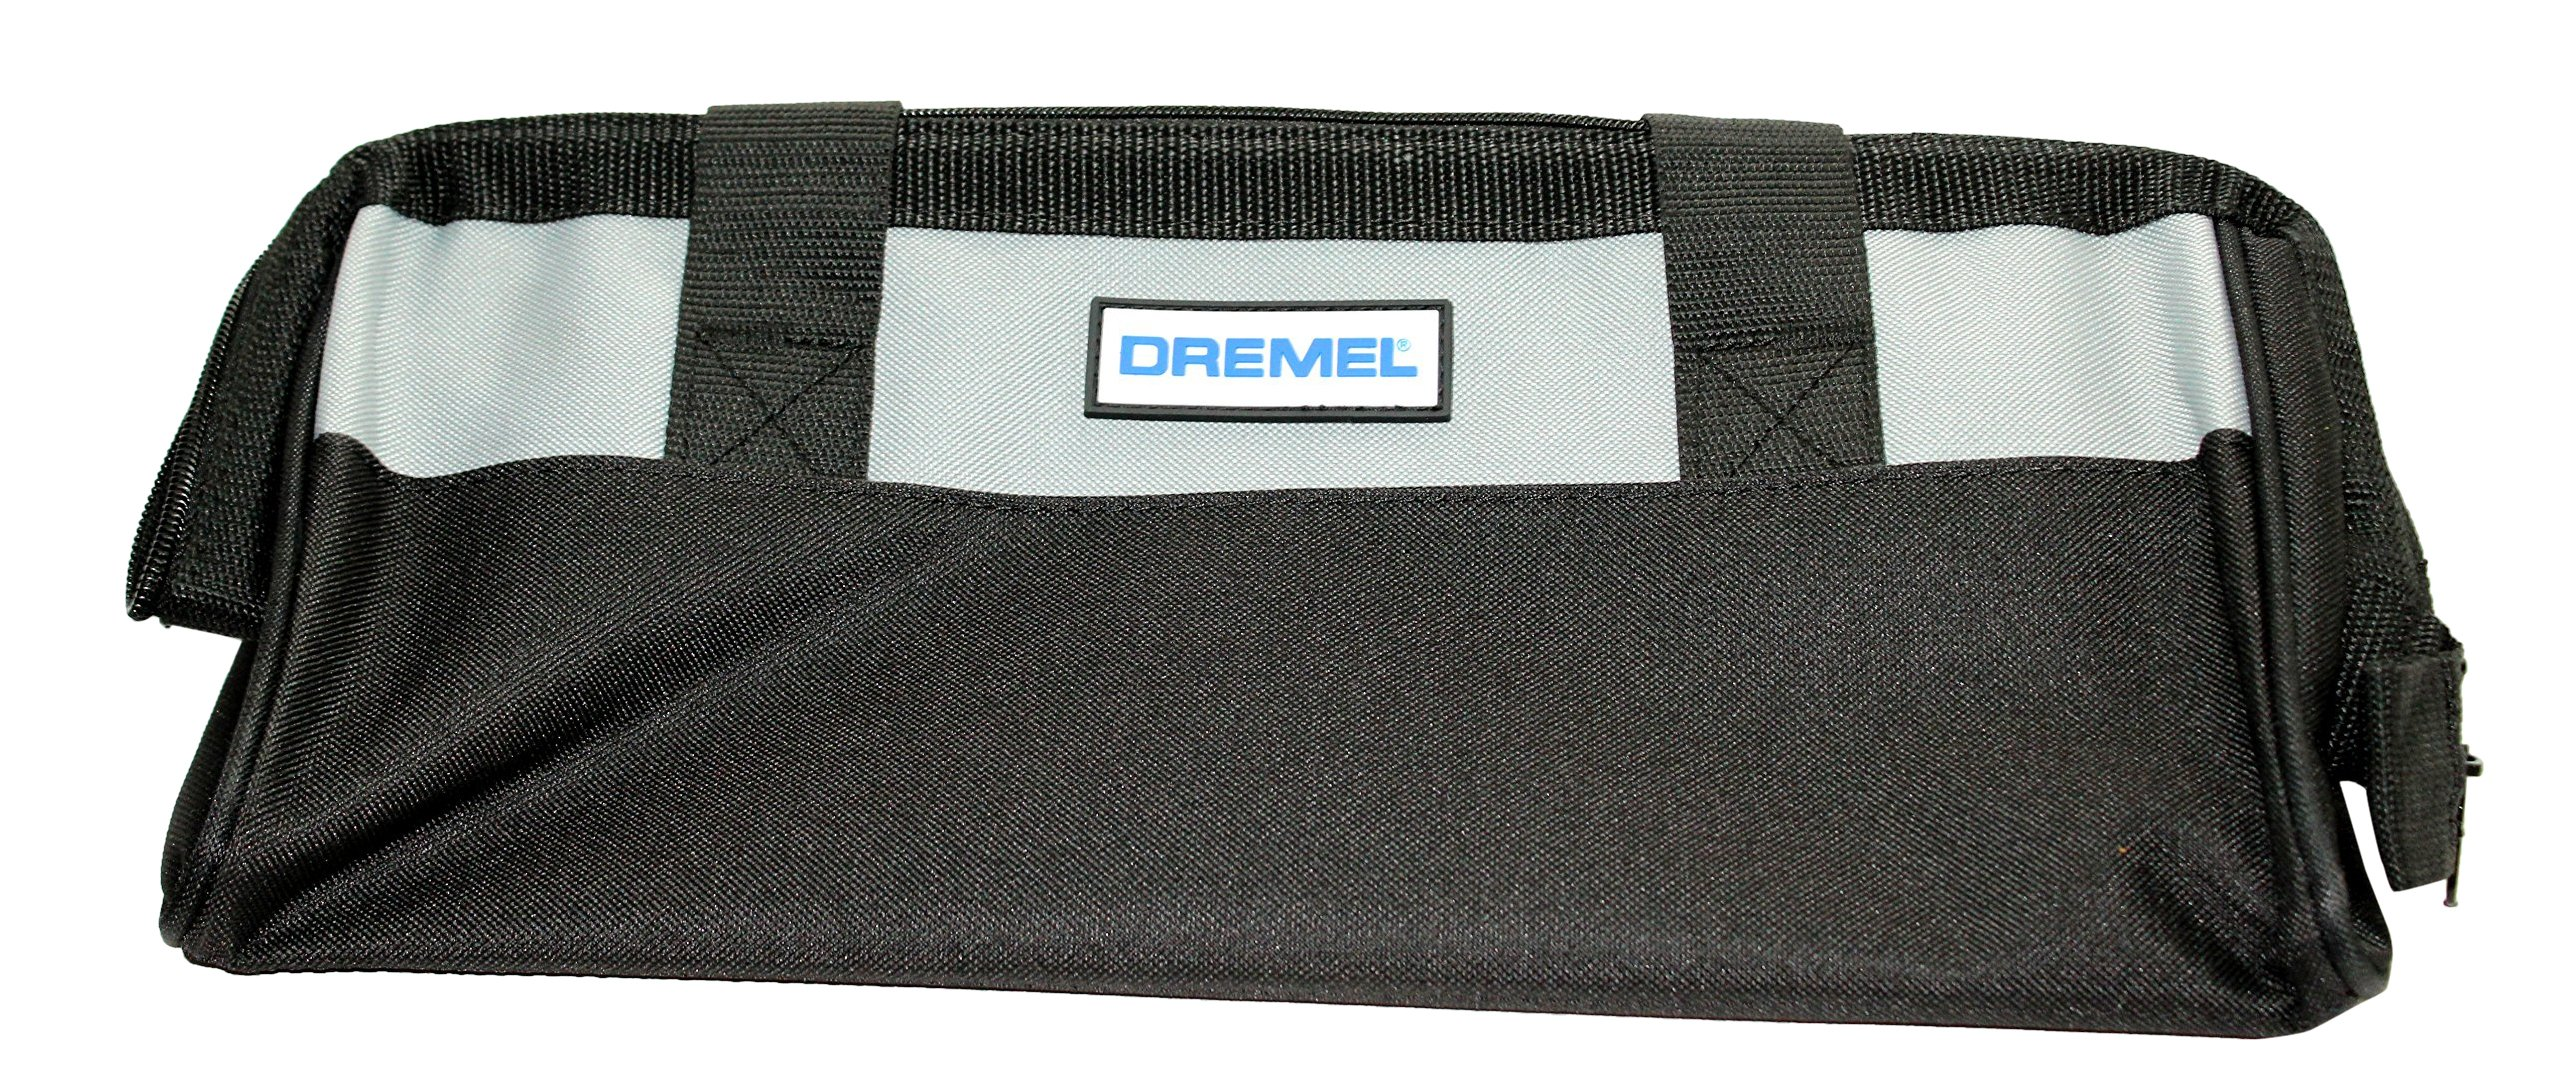 Dremel Parts 2610028744 Carry Bag